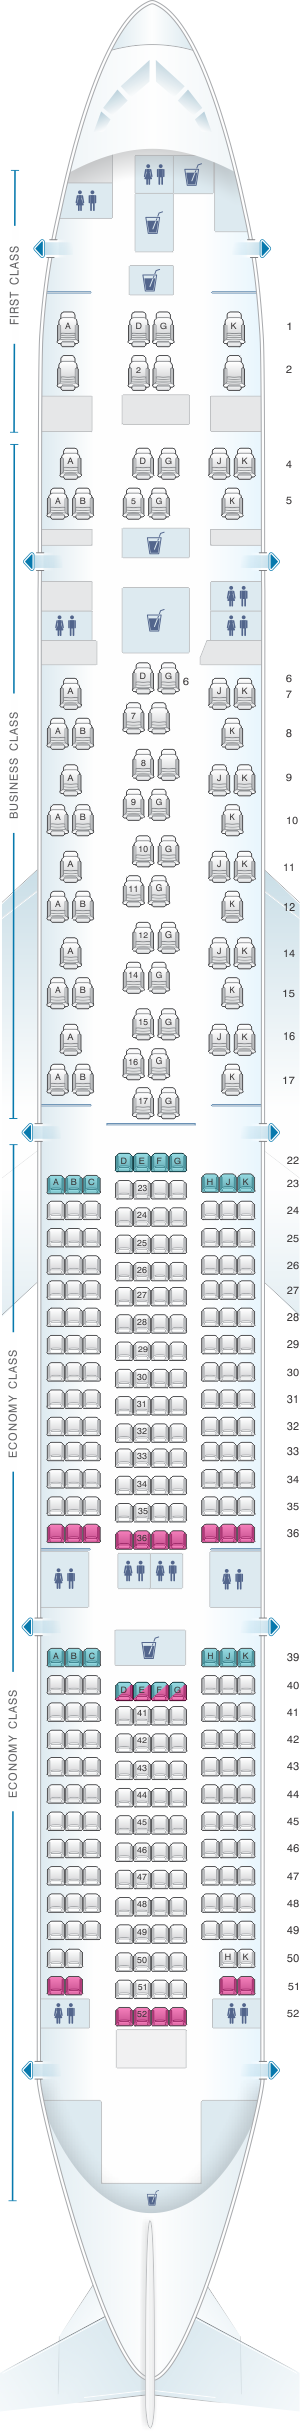 Seat map for SWISS Boeing B777 300ER